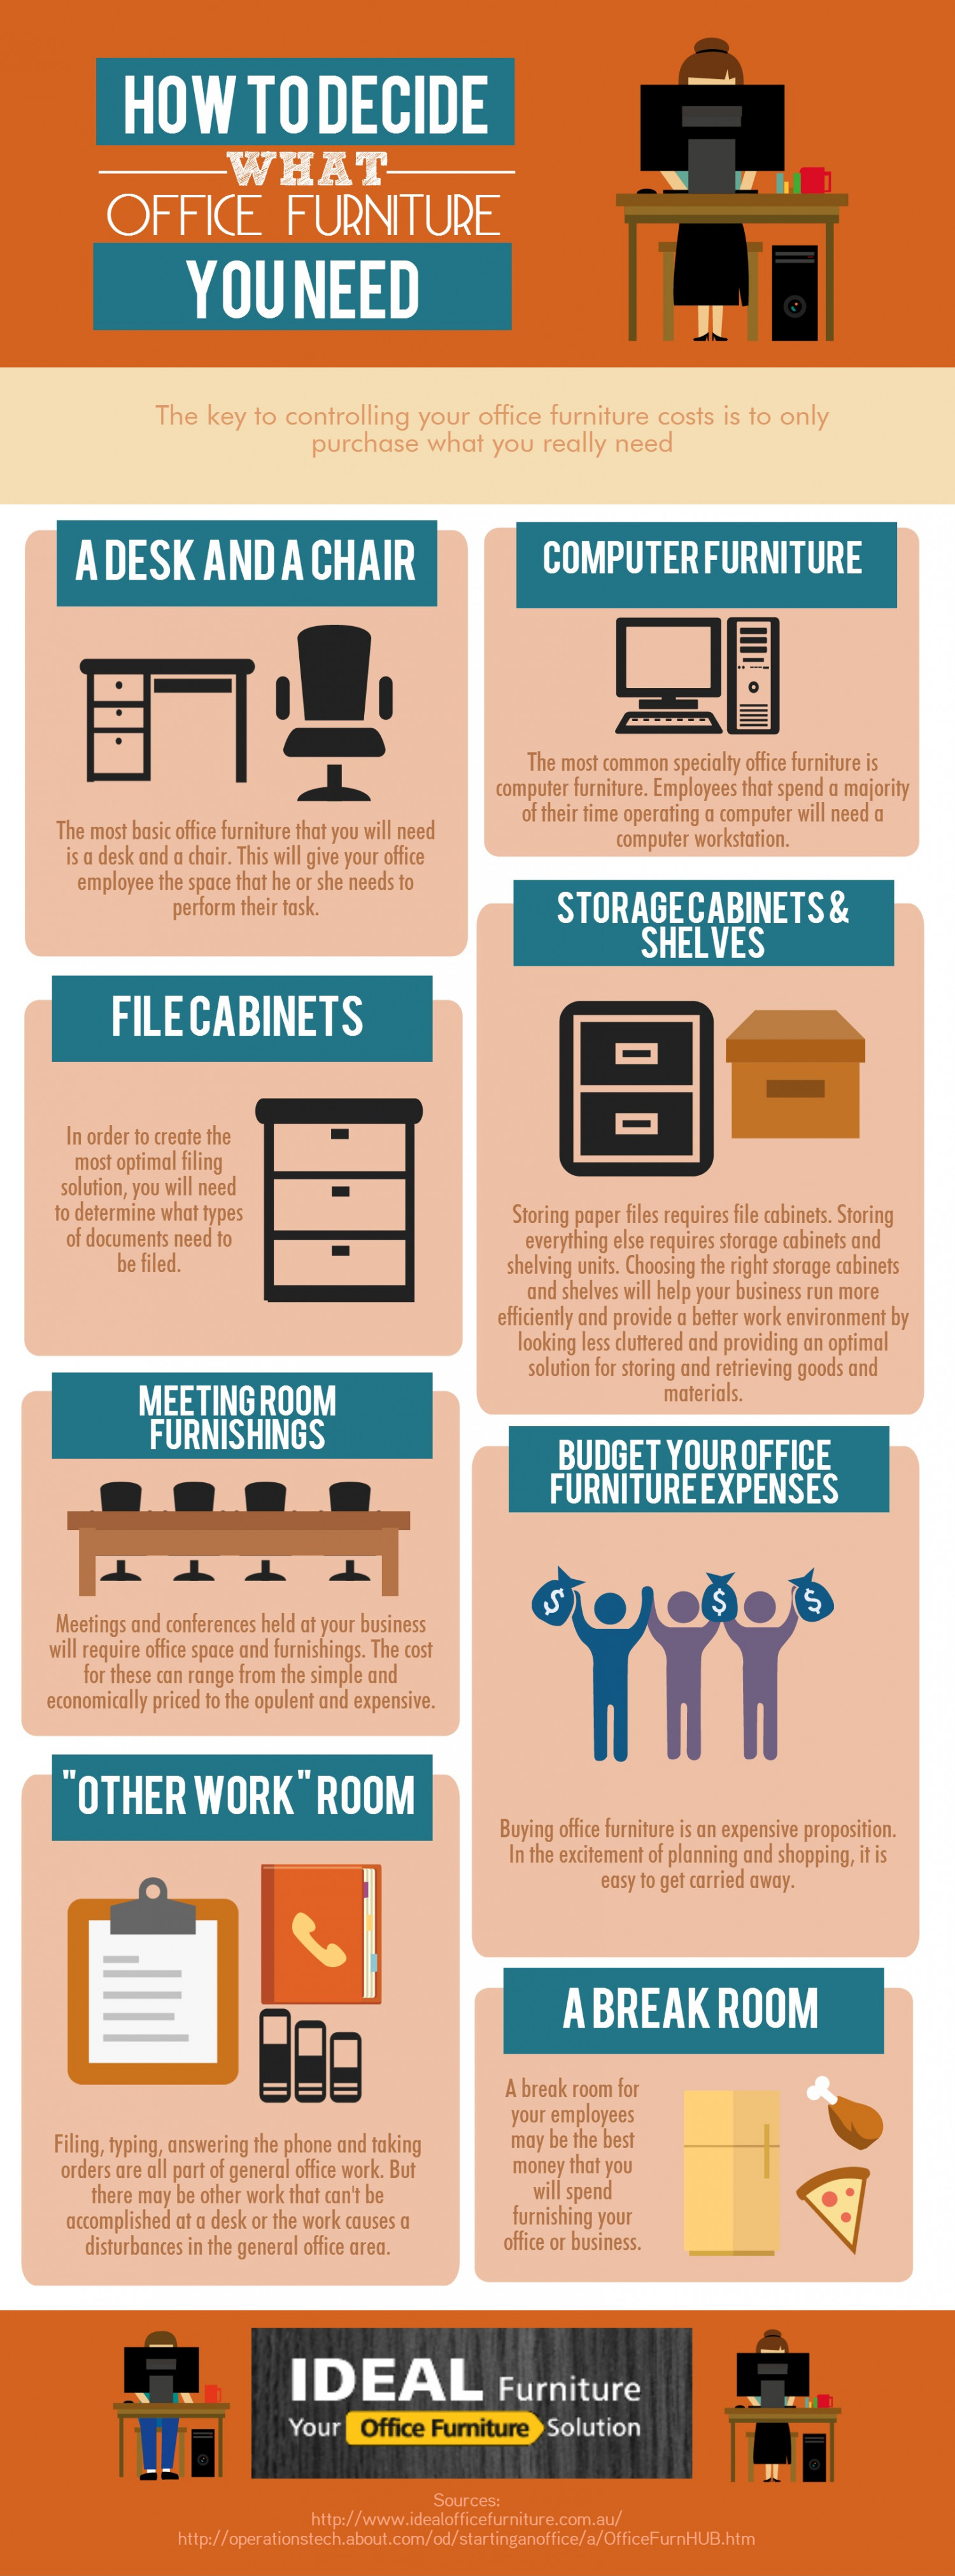 How to Decide What Office Furniture You Need Infographic